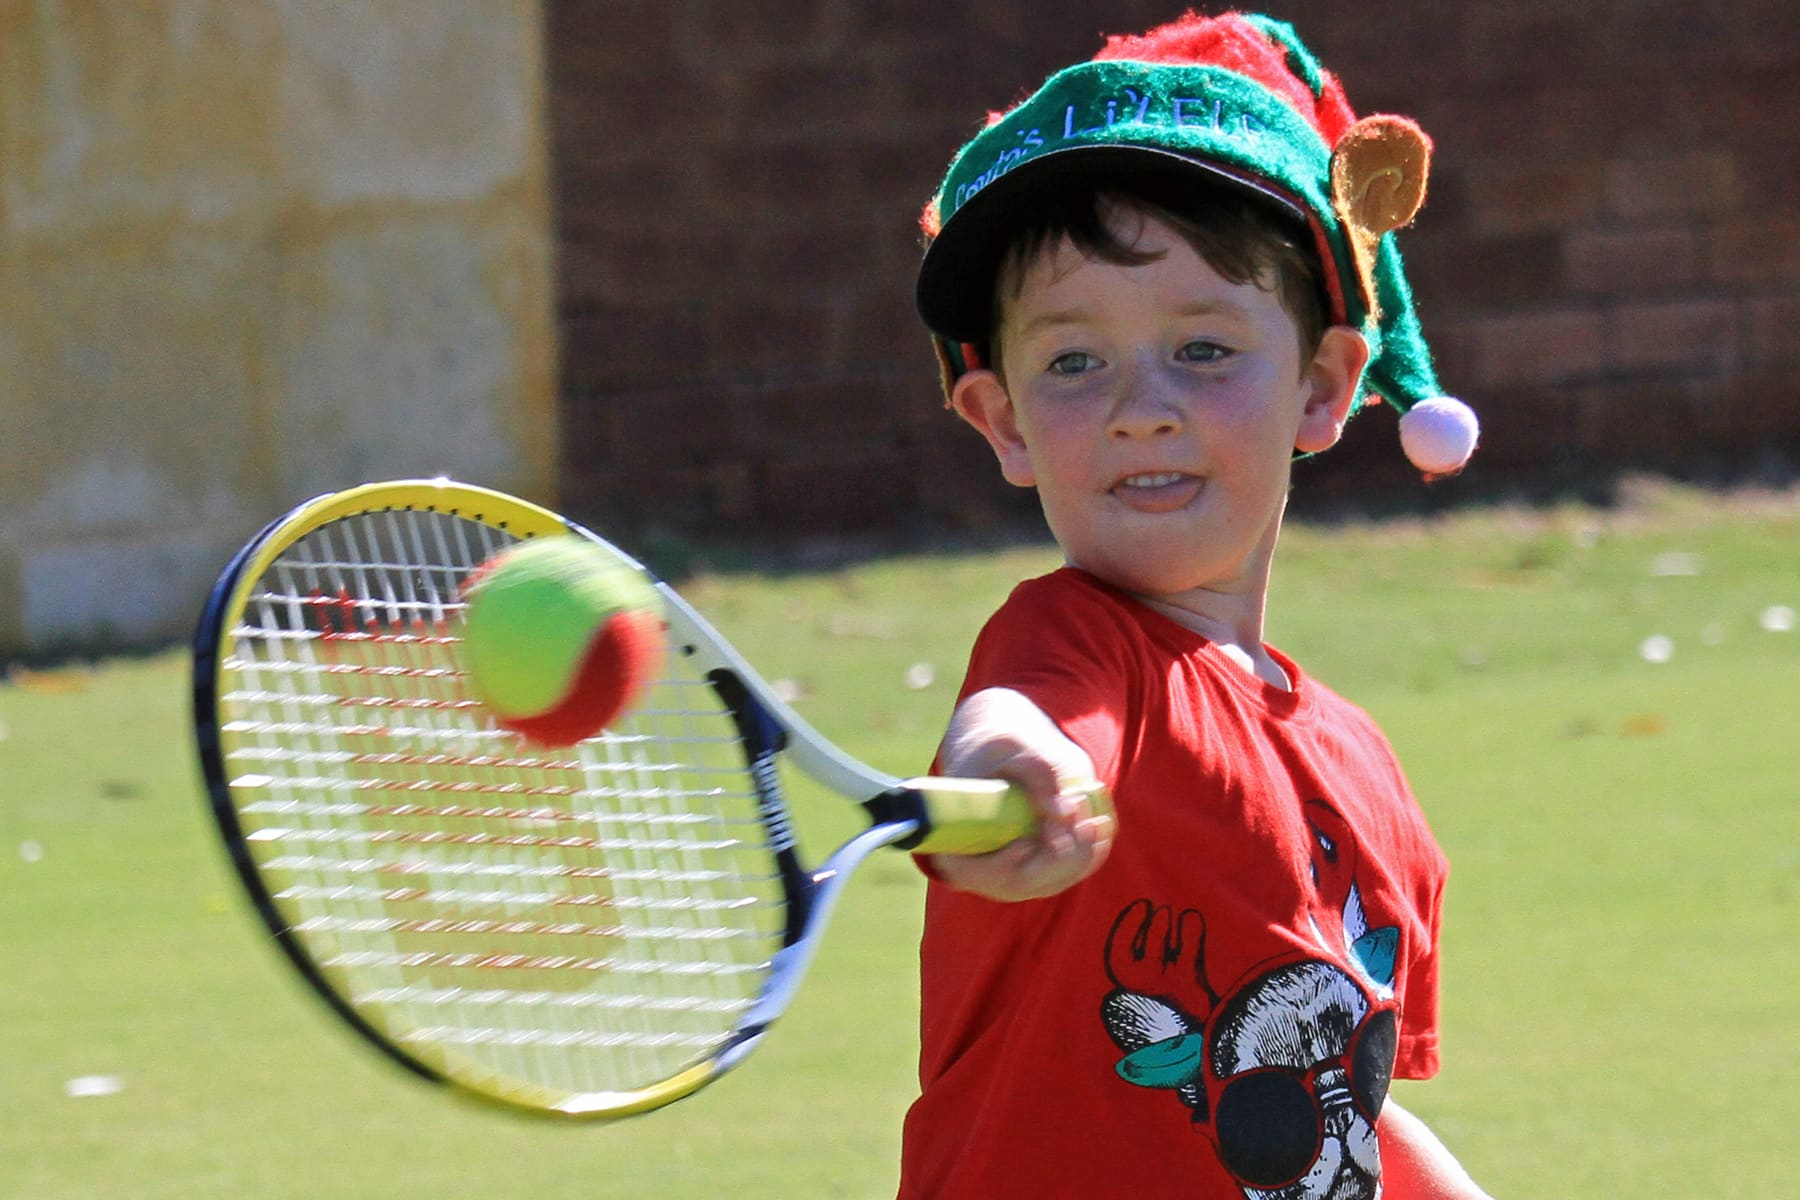 https://www.tennisexcellence.com.au/wp-content/uploads/2020/01/Programs_School-Holiday-Clinics.jpg